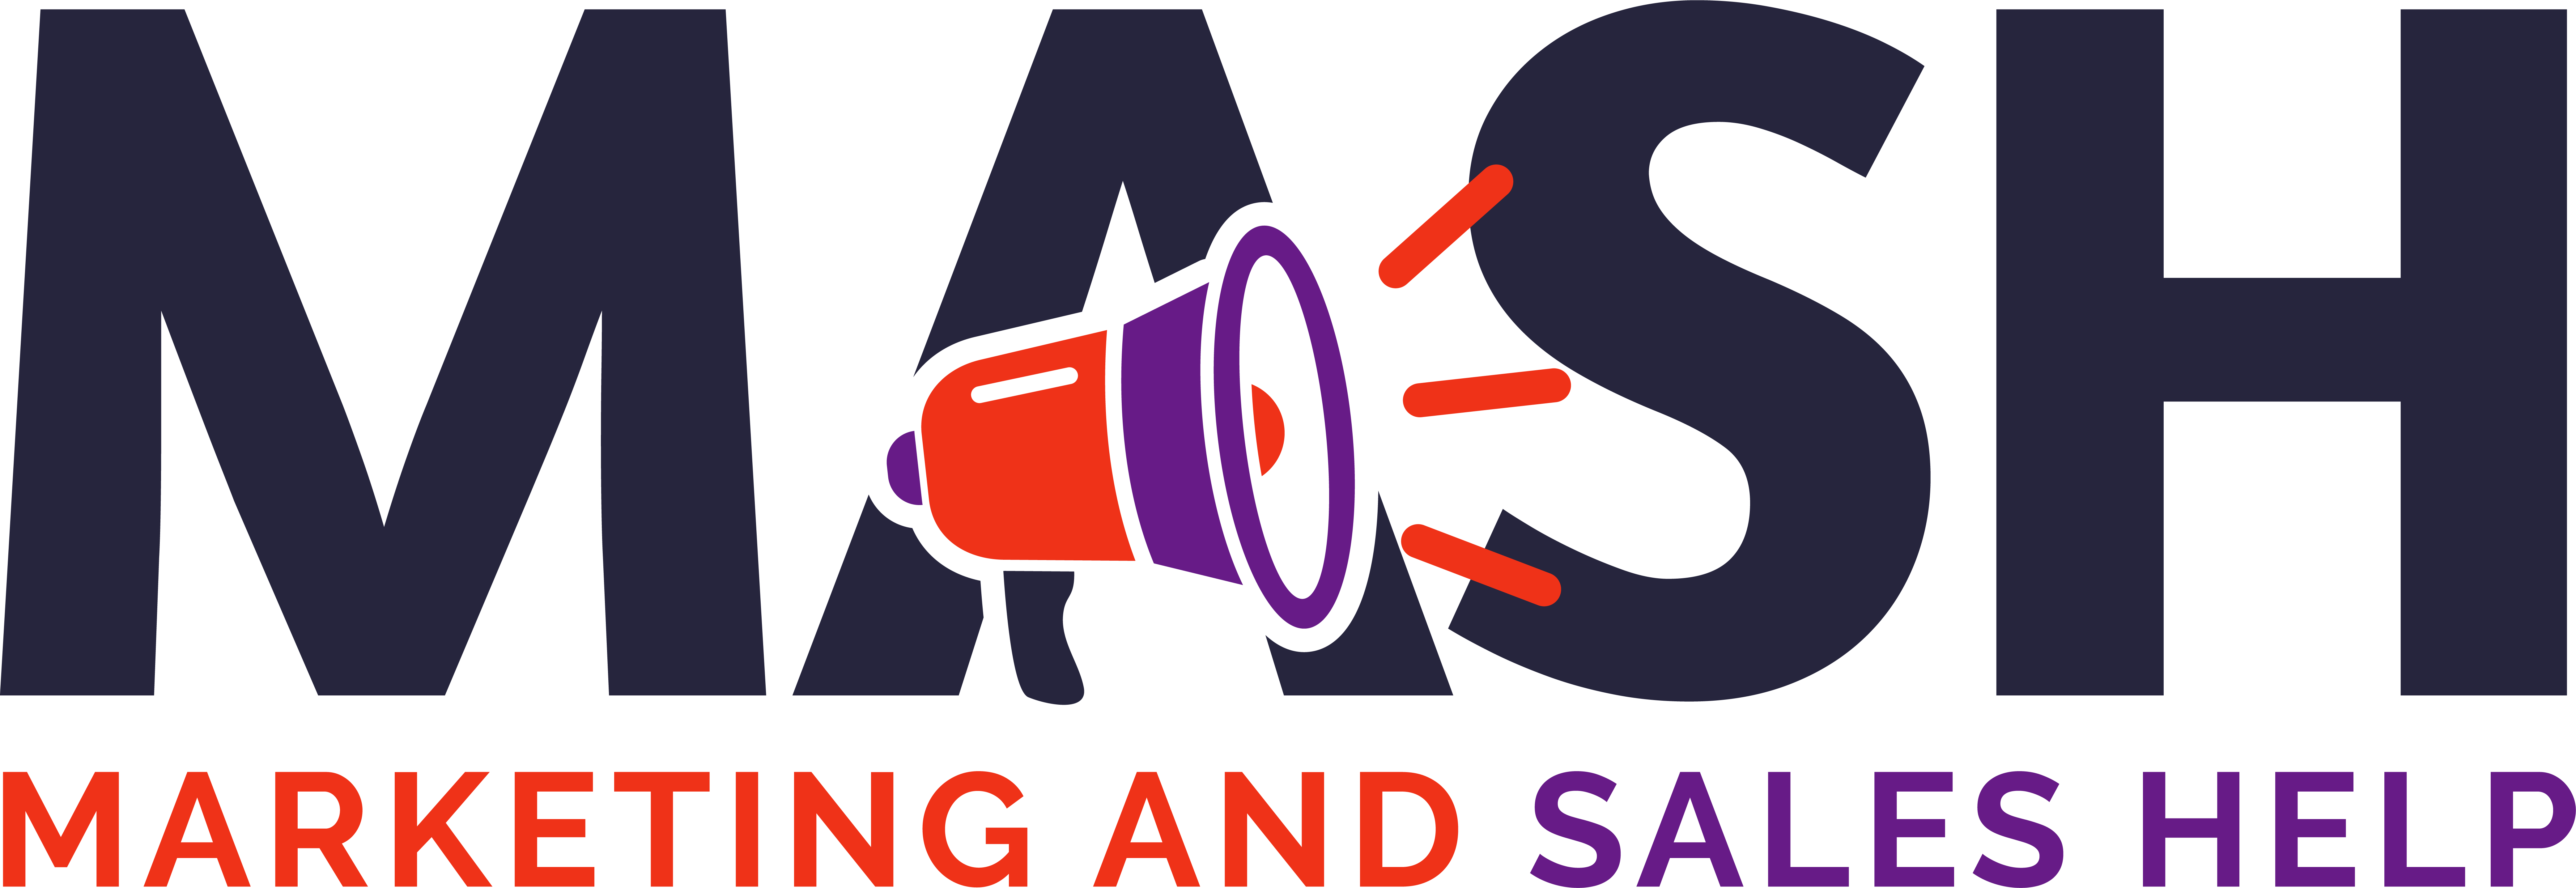 MASH Marketing and Sales Help logo consulting services in Boston Massachusetts sales tools